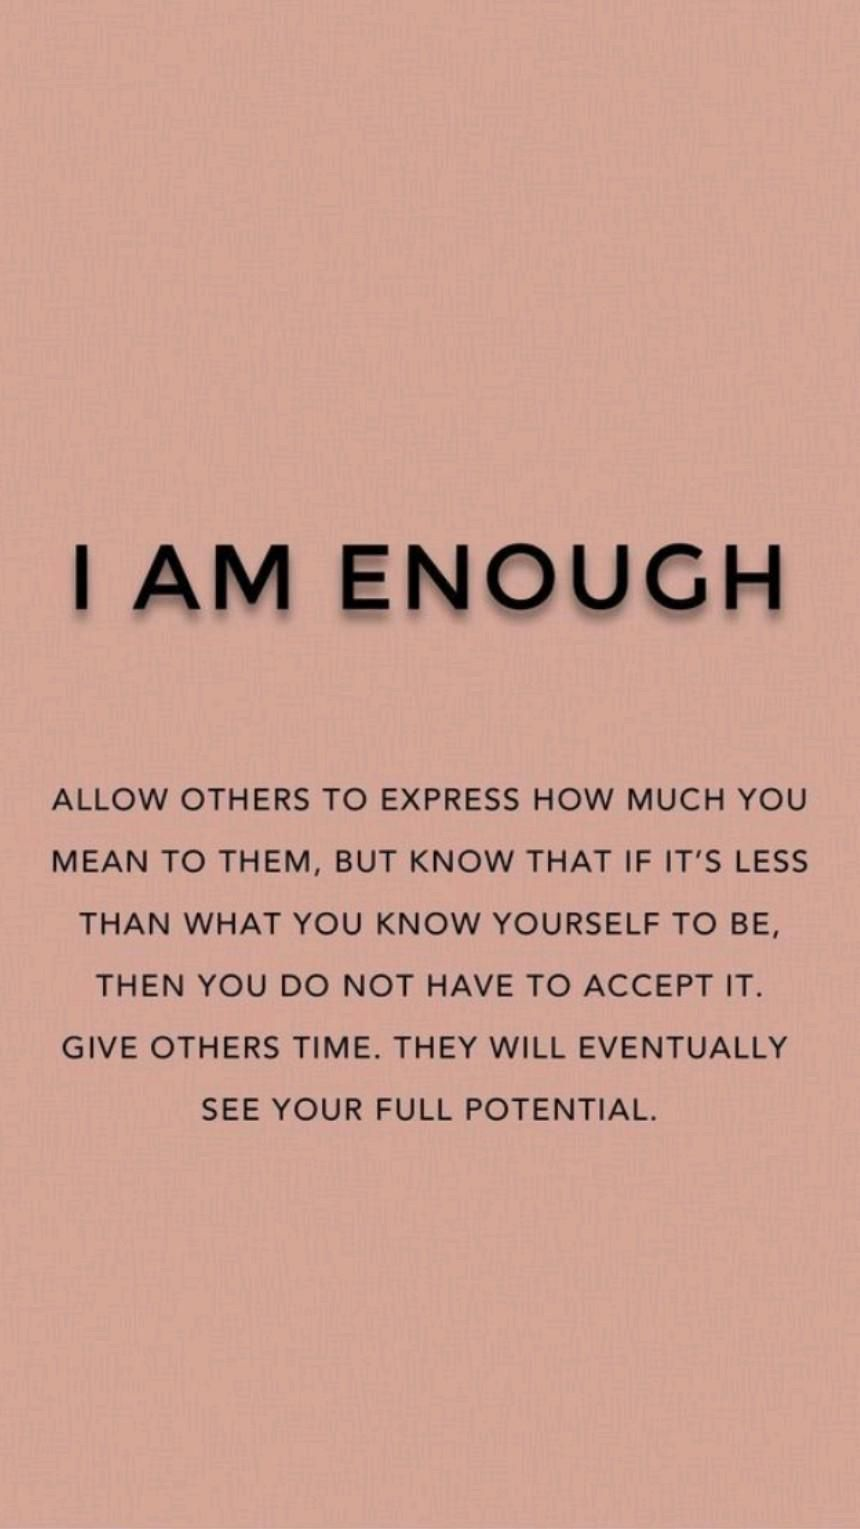 You are enough💥Don't believe what others have told you💥Your amazing!